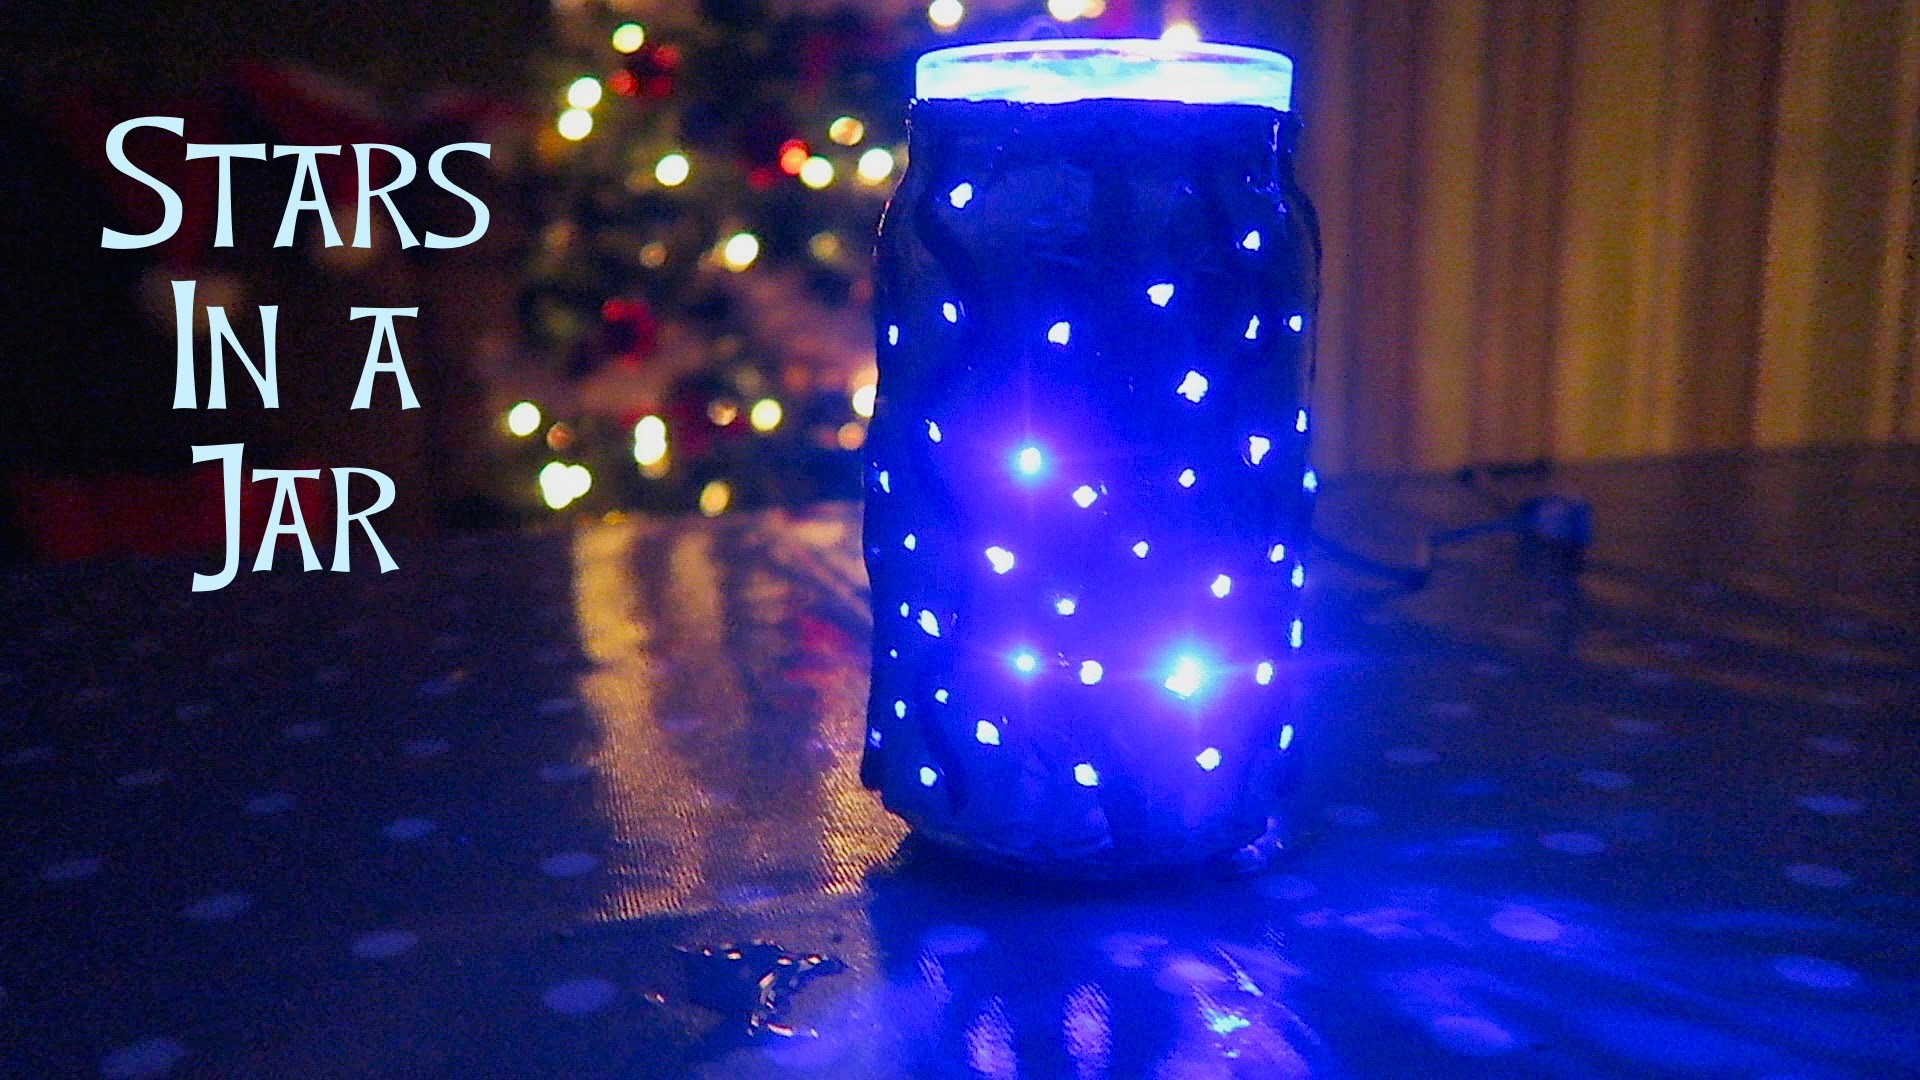 DIY XMAS NIGHT LIGHT - STARS IN A JAR